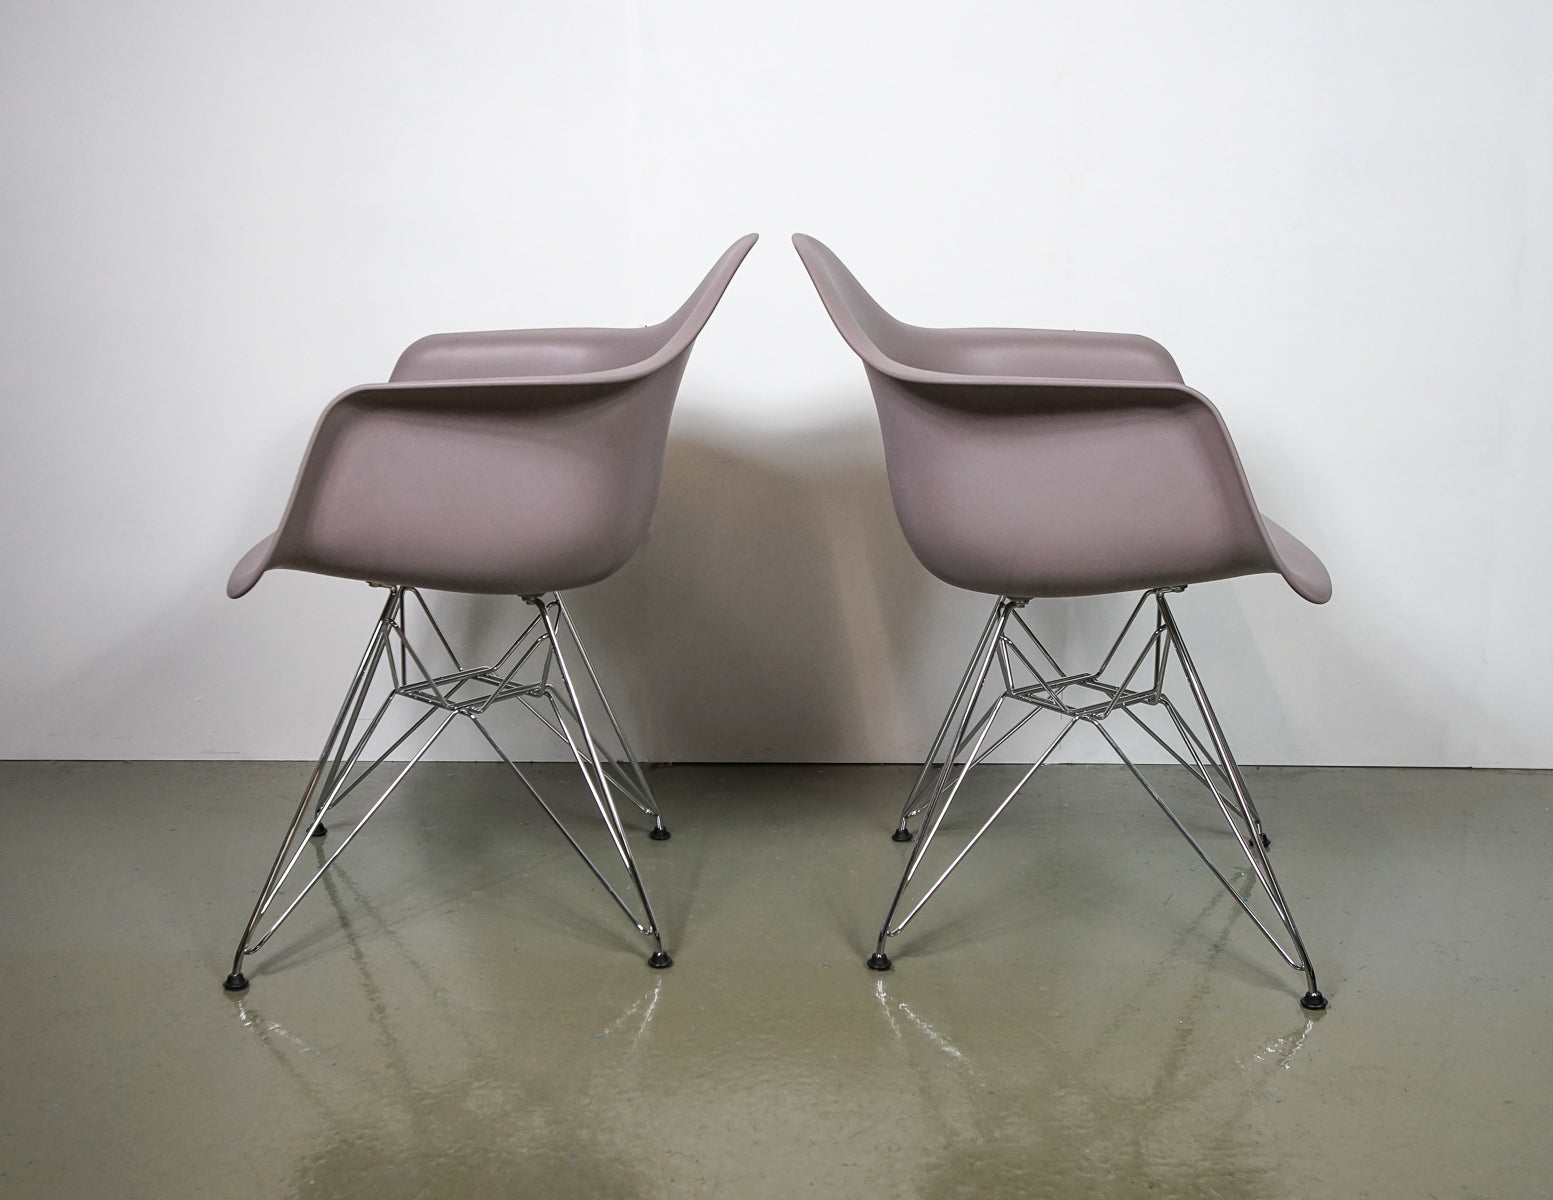 (Fast No-Contact Delivery) Vitra Eames DAR Armchair -2 units available